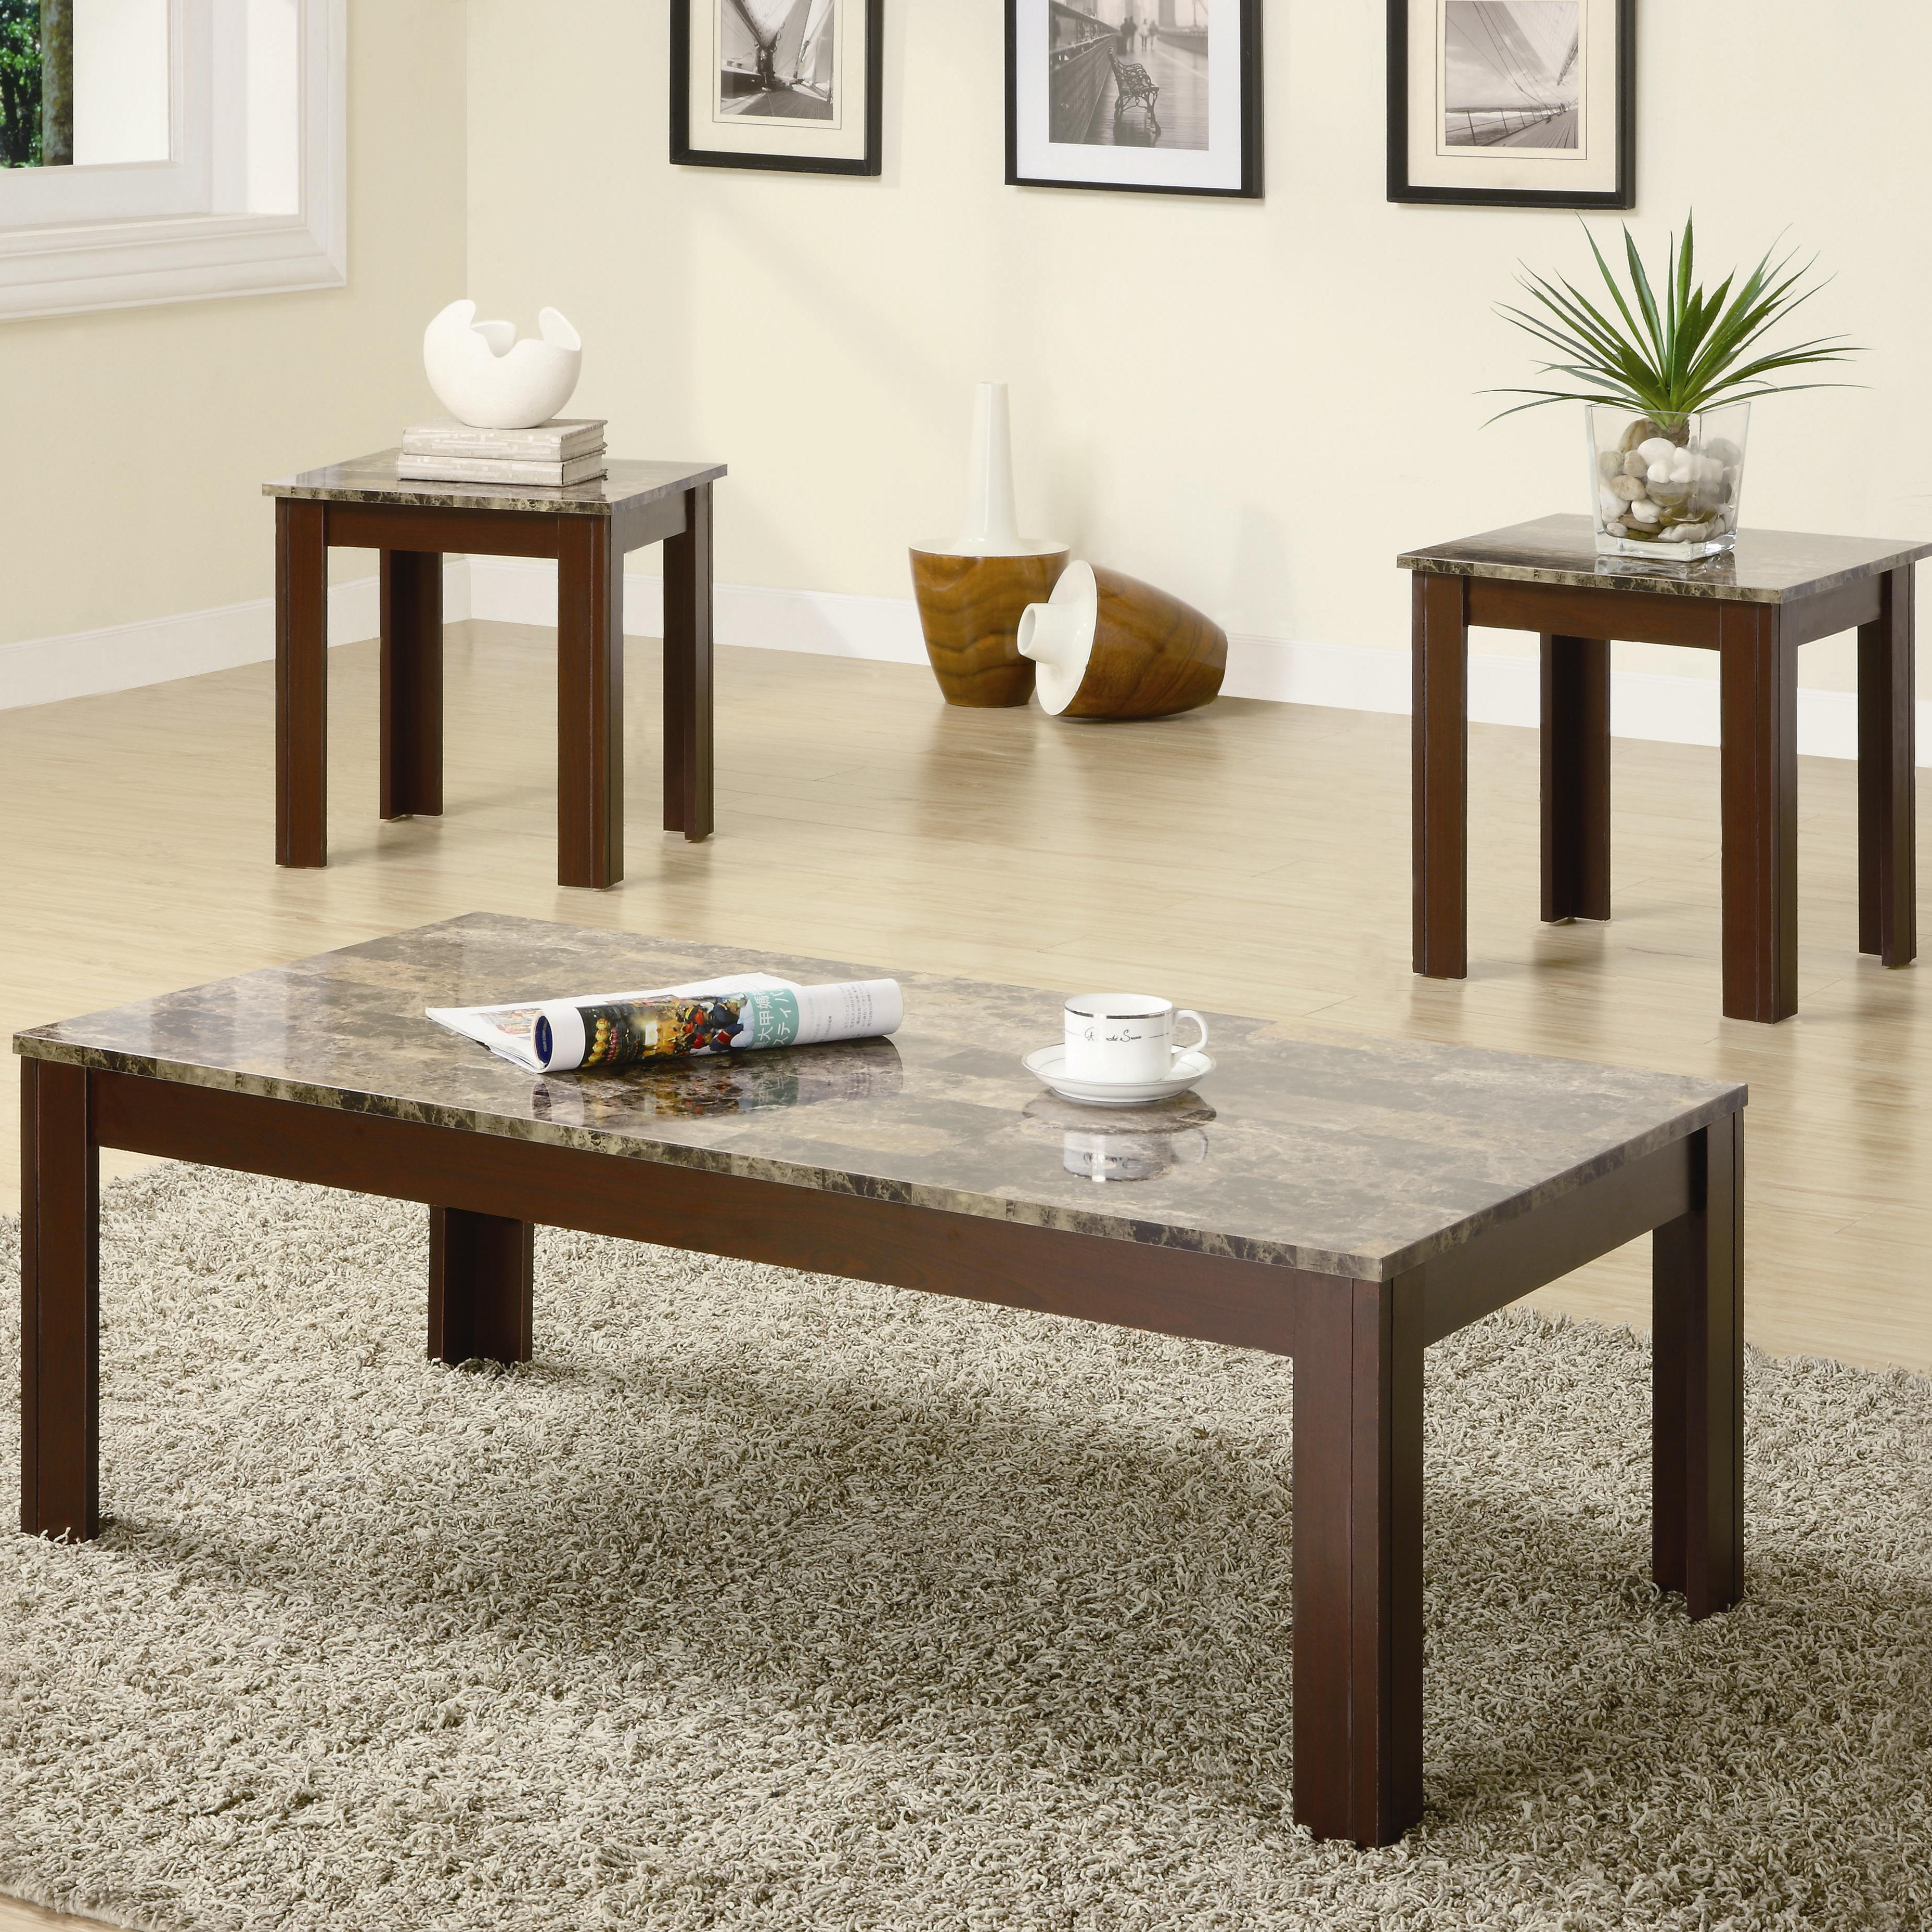 Occasional Table Sets 3PC Occasional Group by Coaster at Prime Brothers Furniture